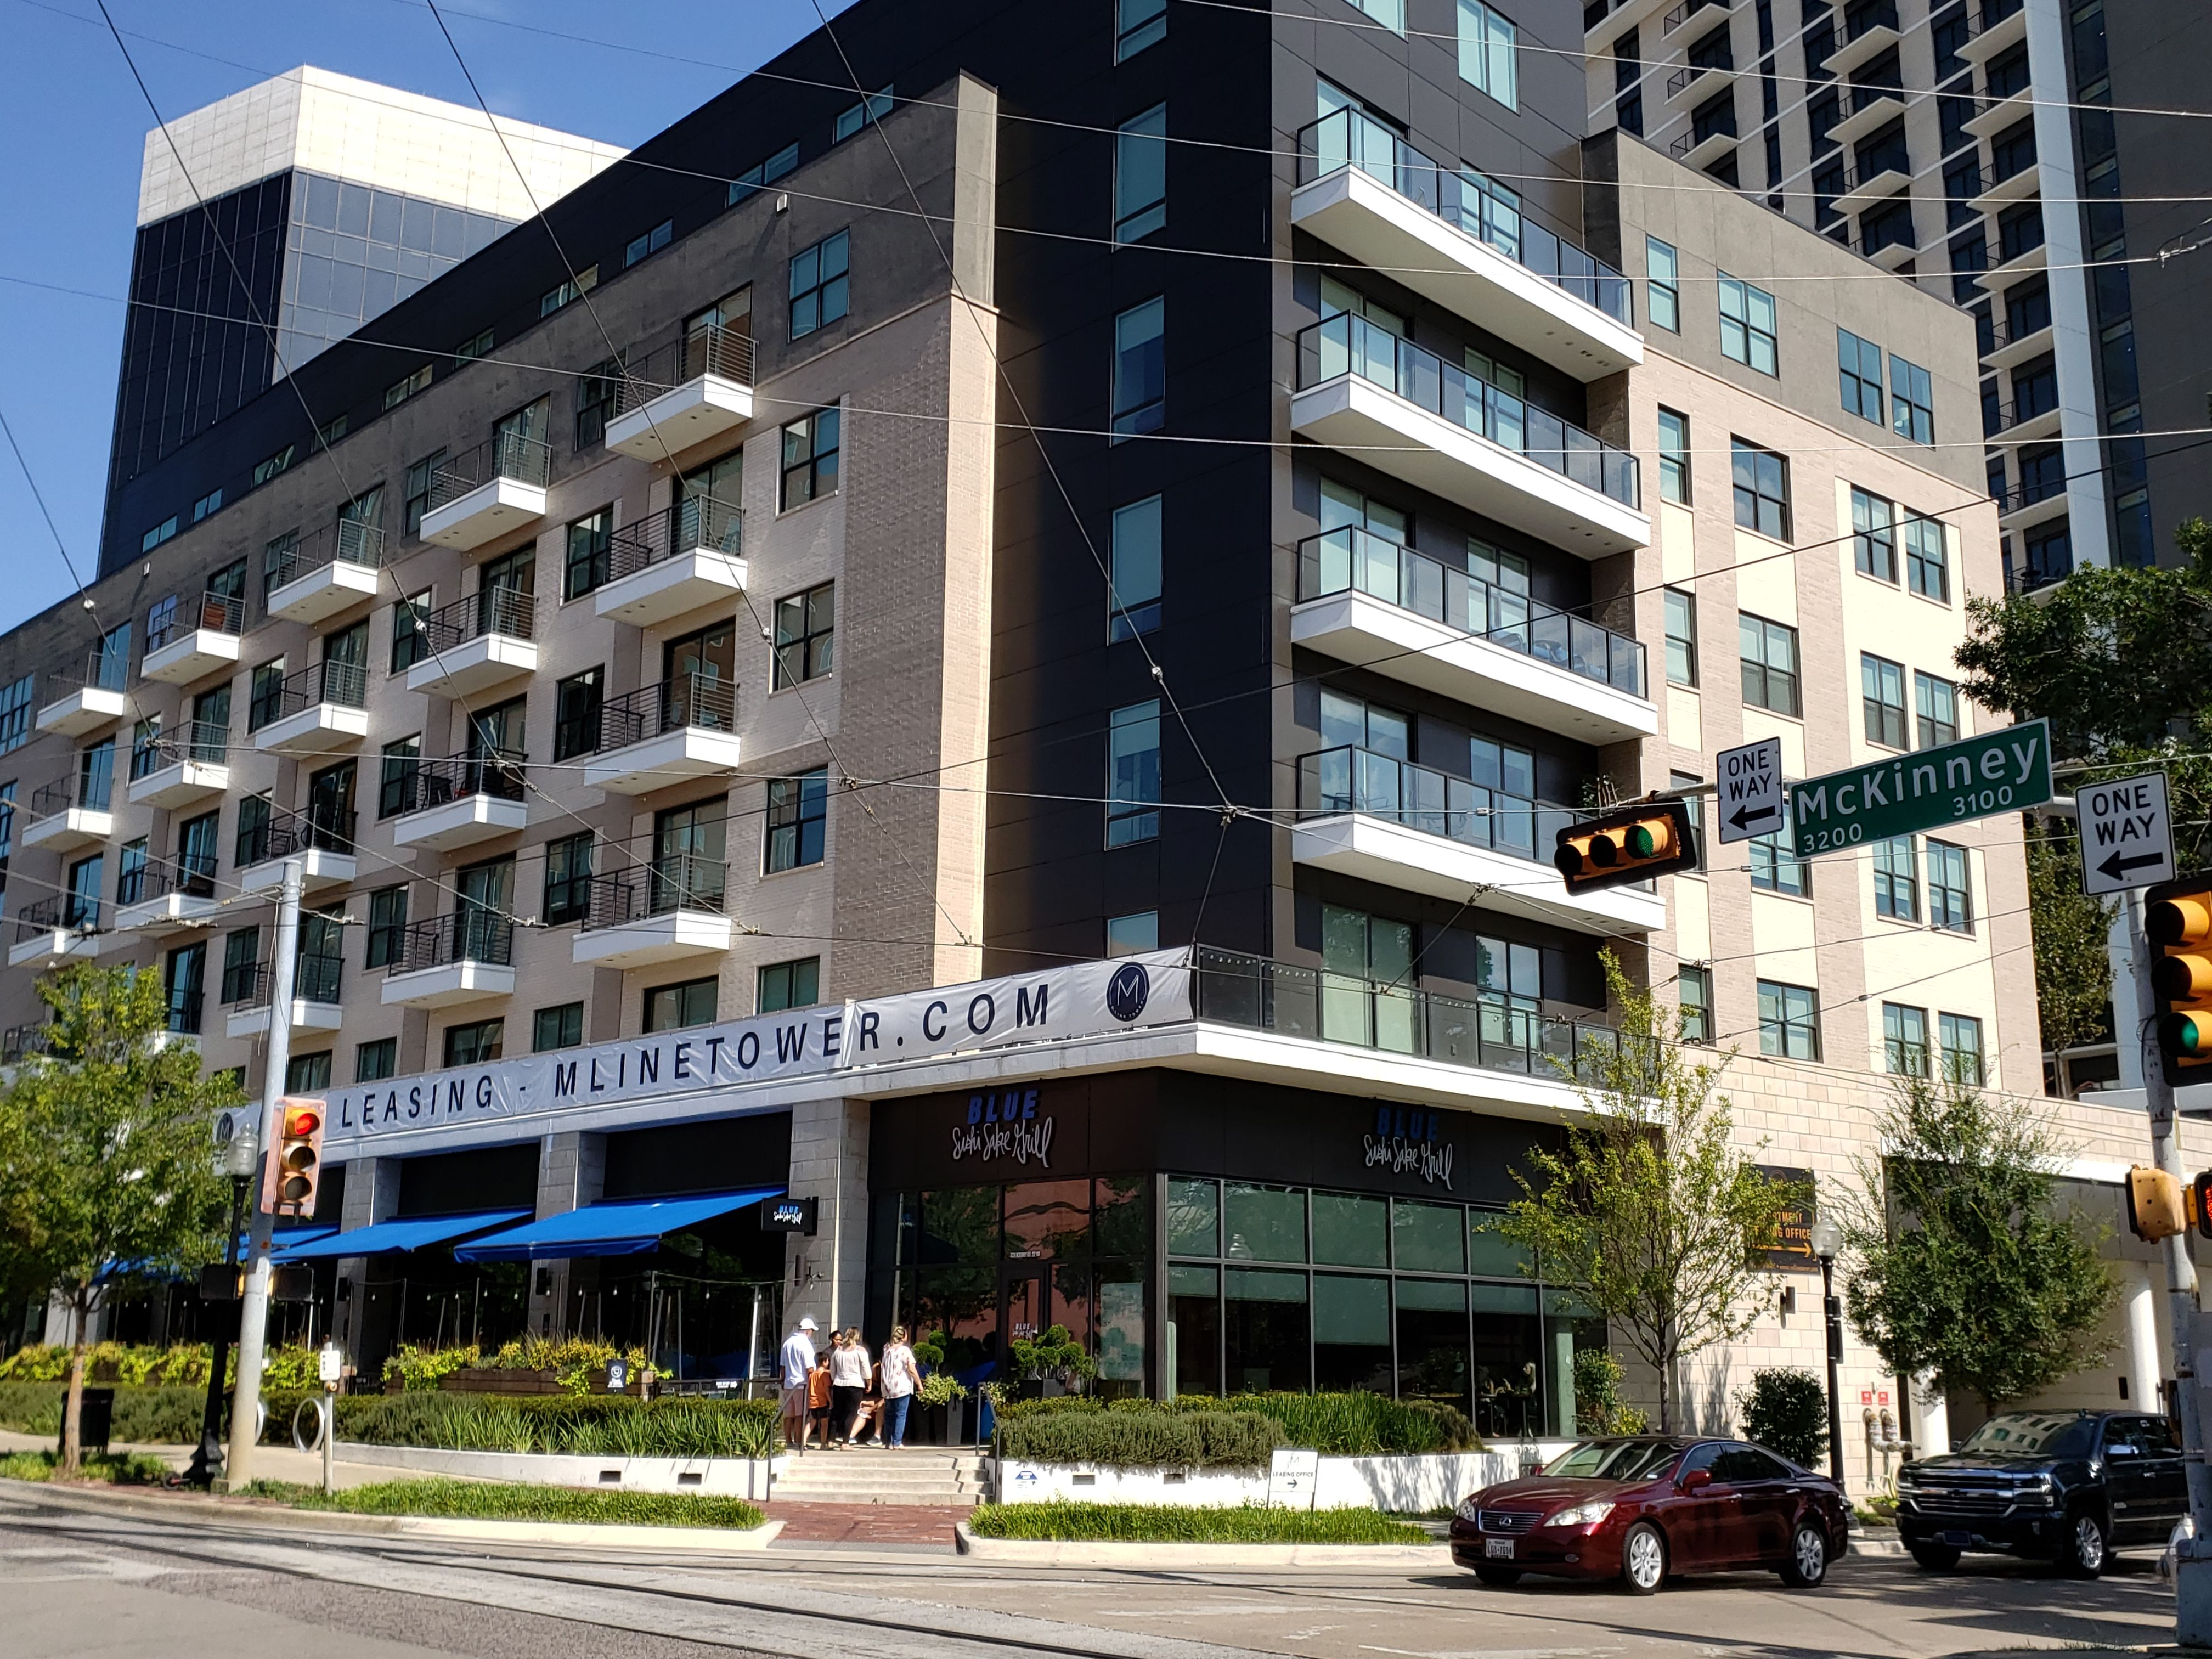 Pin On Uptown Dallas Apartments Daily Best Deal